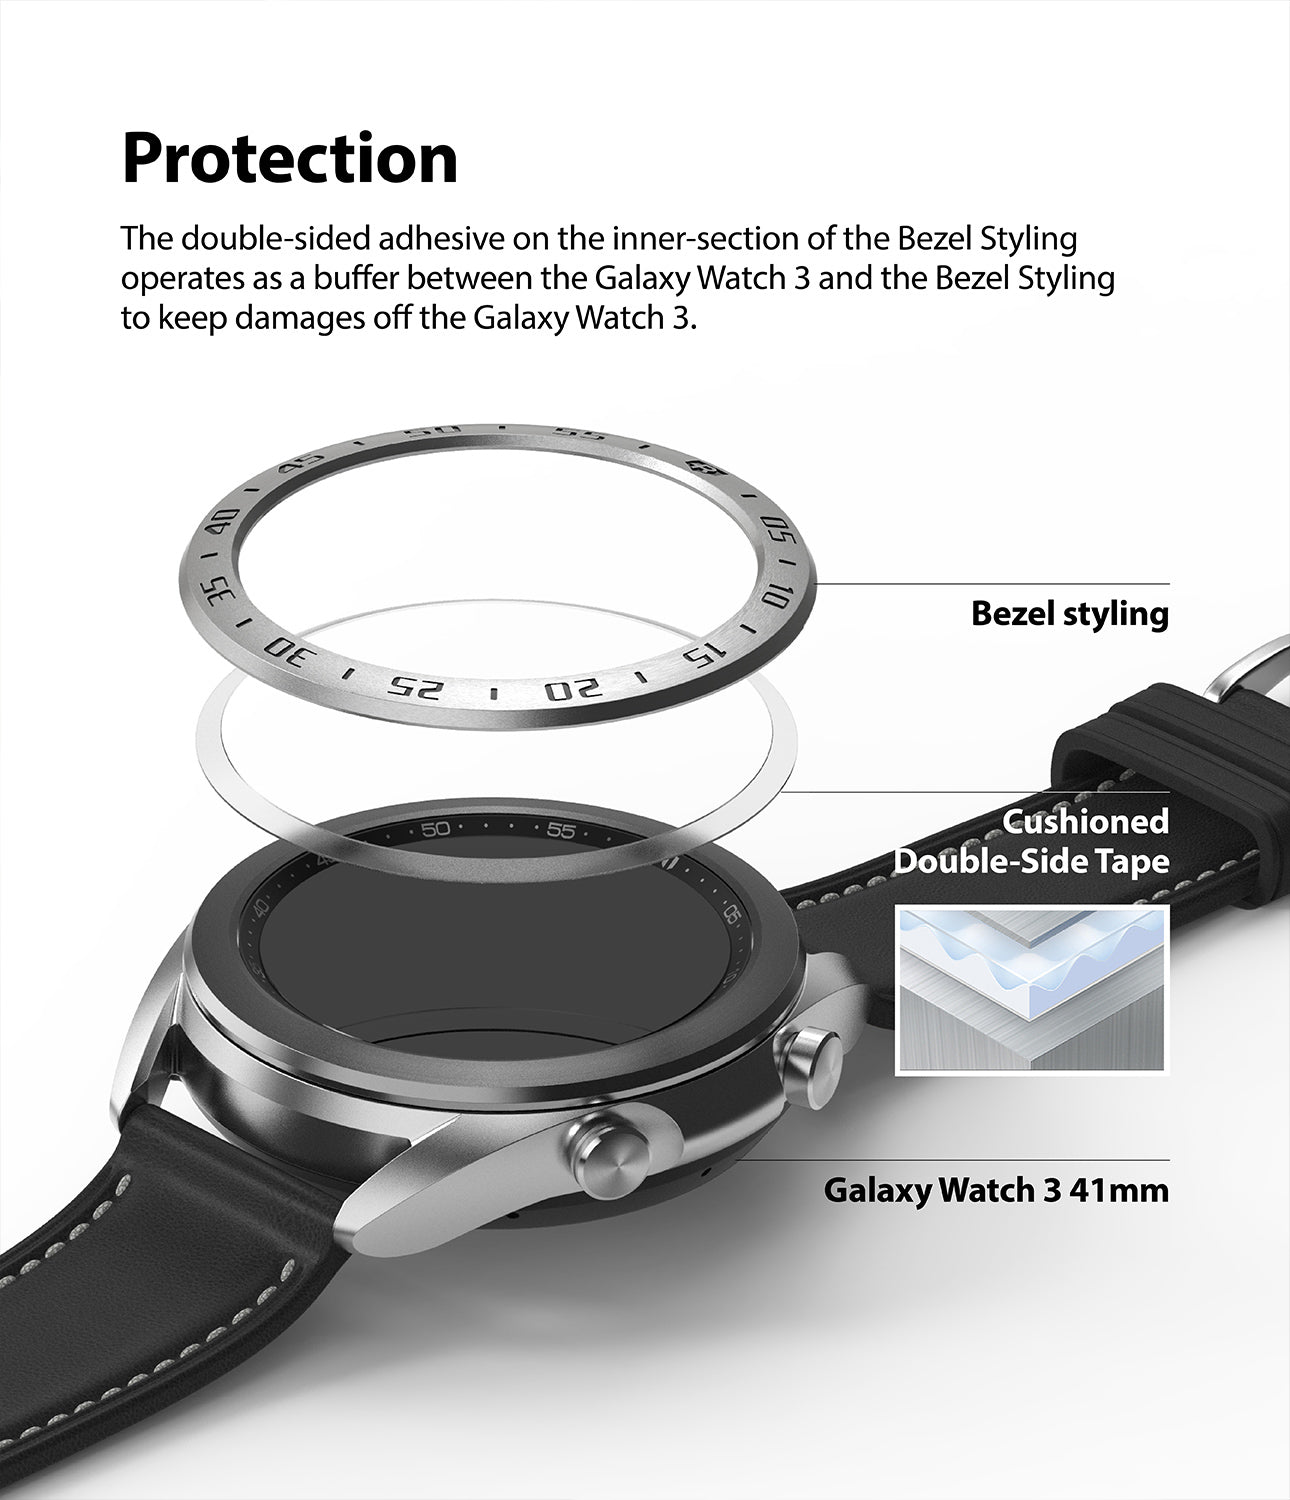 the double sided adhesive on the inner section of the bezel styling operates as a buffer between the galaxy watch 3 and the bezel styling to keep damages off the galaxy watch 3